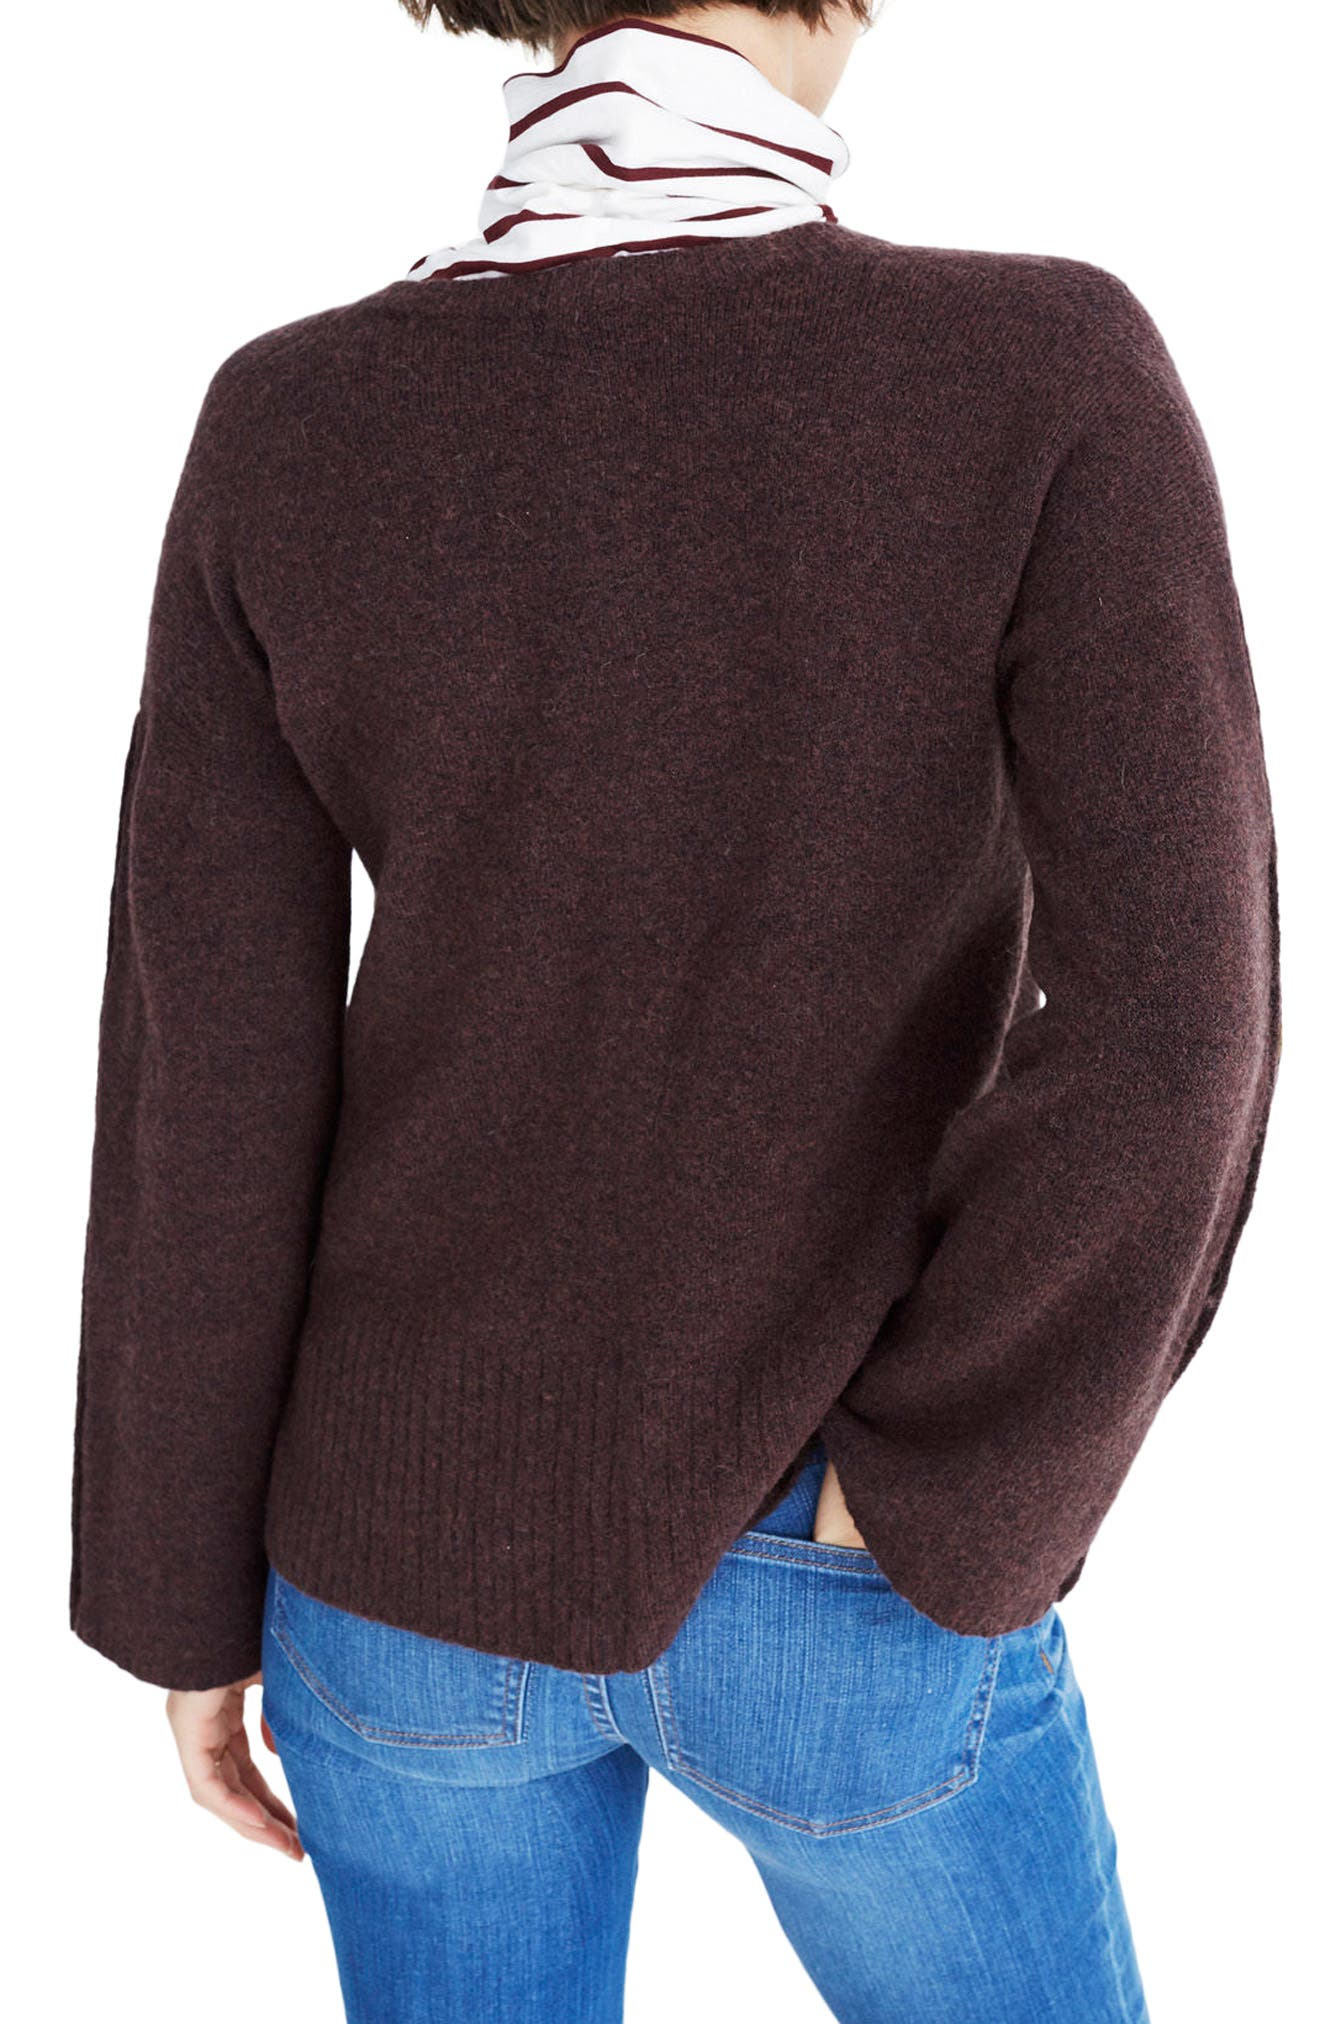 Button Sleeve Pullover Sweater,                             Alternate thumbnail 2, color,                             200